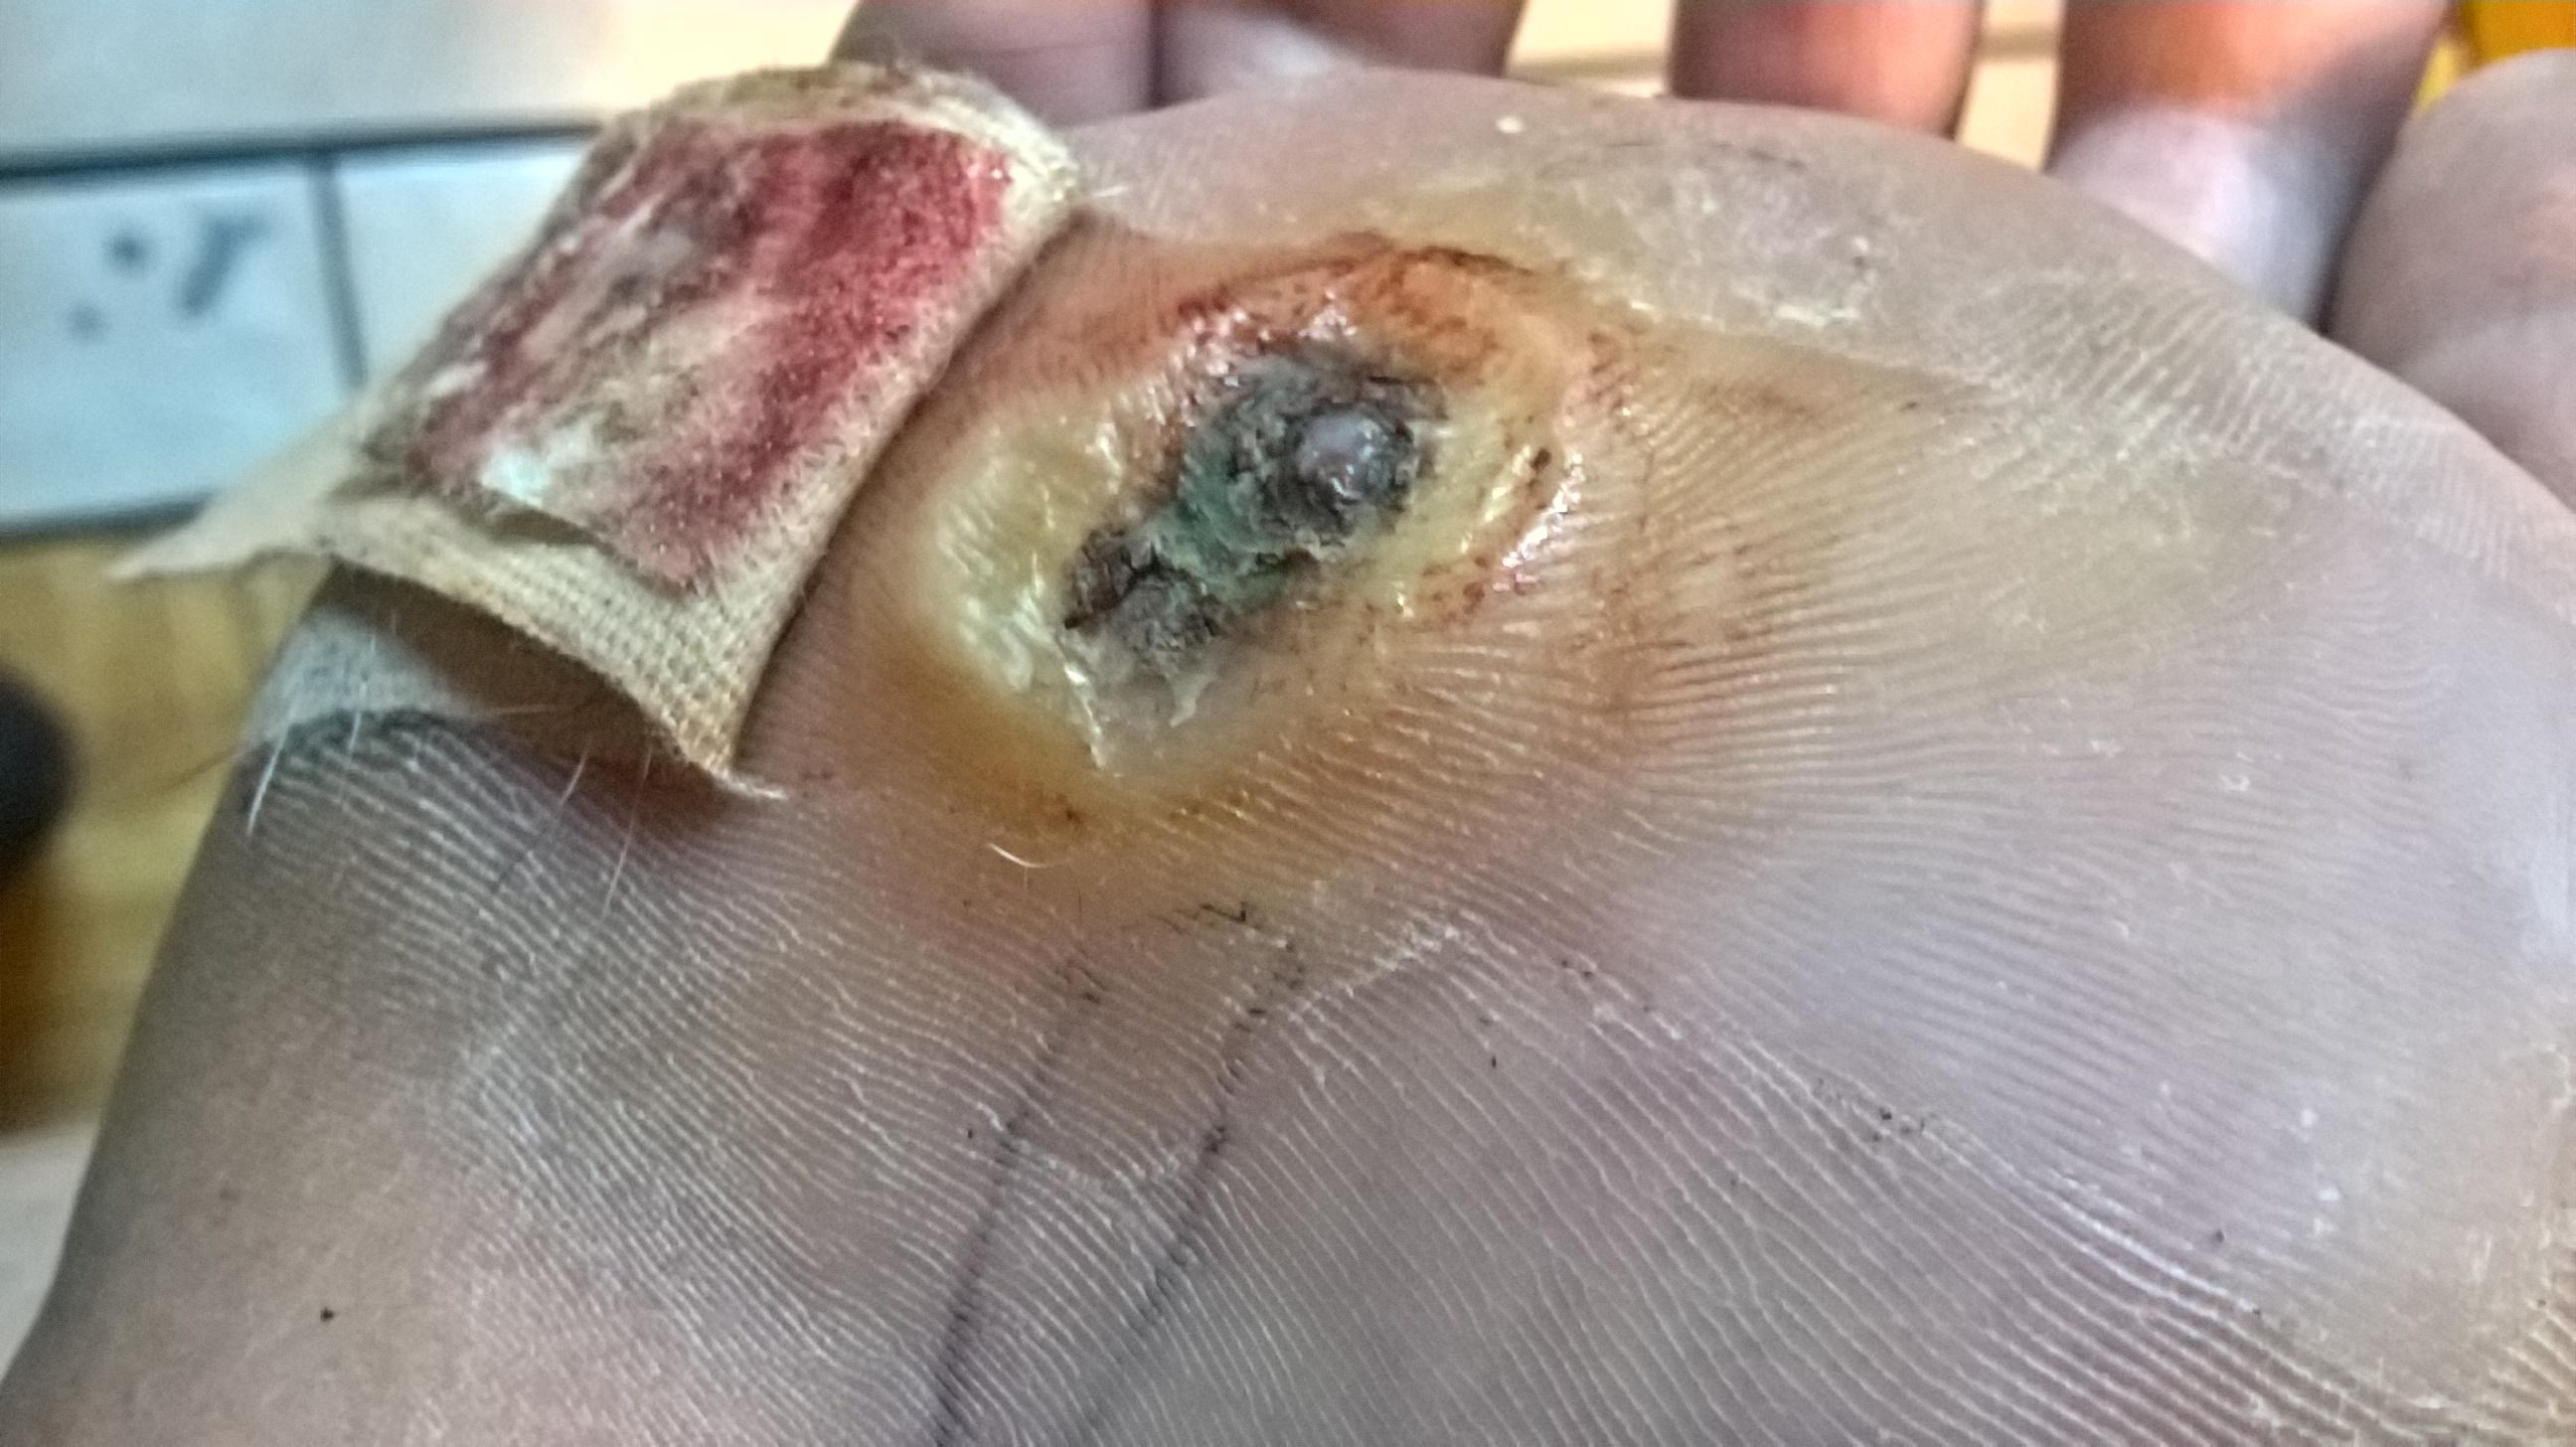 wart treatment gone wrong papilloma virus uomo come si cura